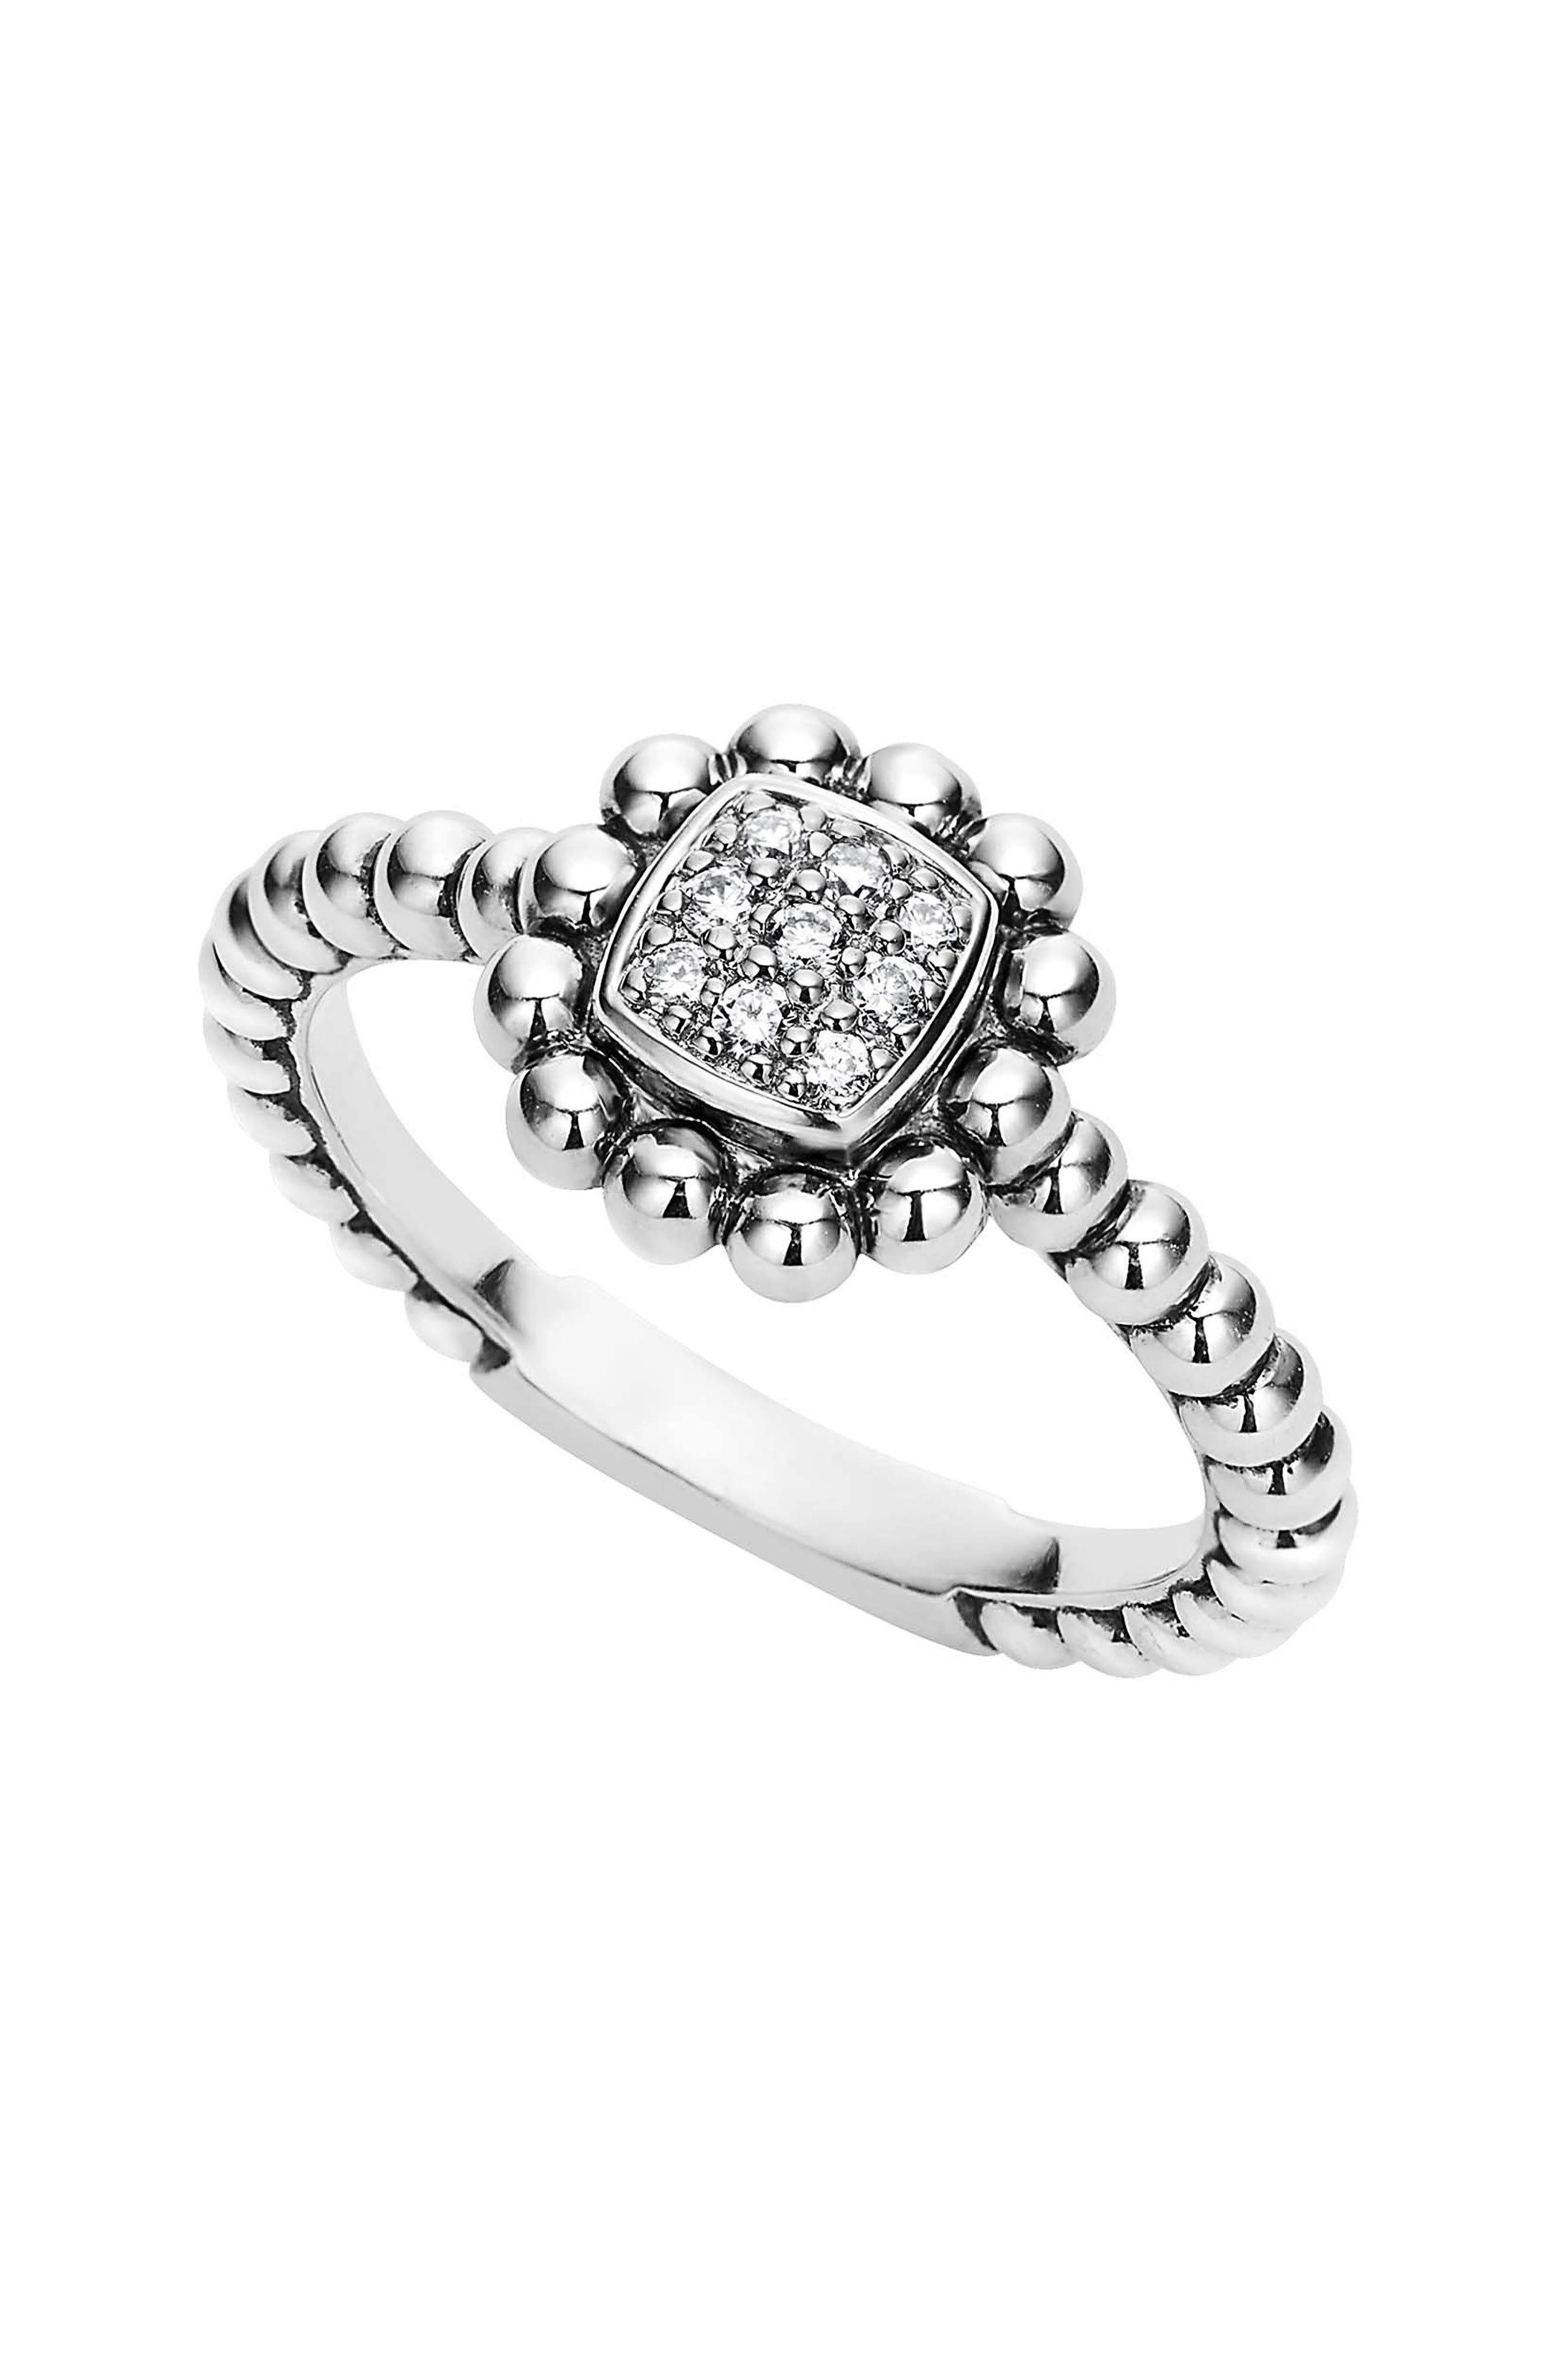 LAGOS Caviar Spark Diamond Square Ring